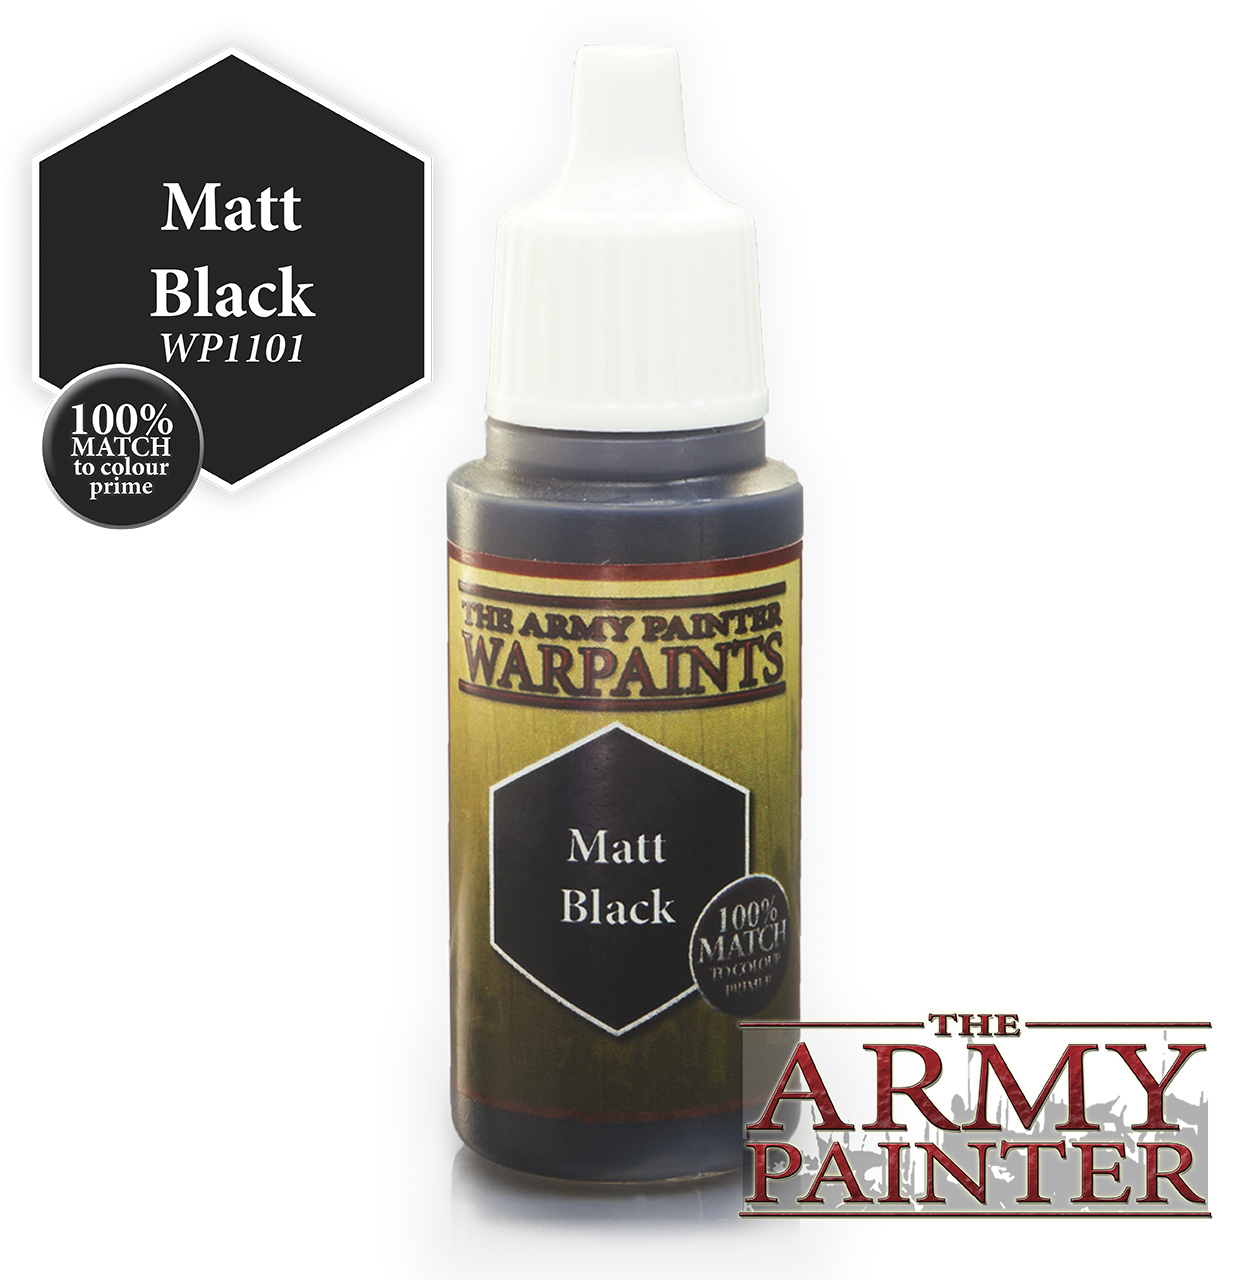 Matt Black Warpaint image